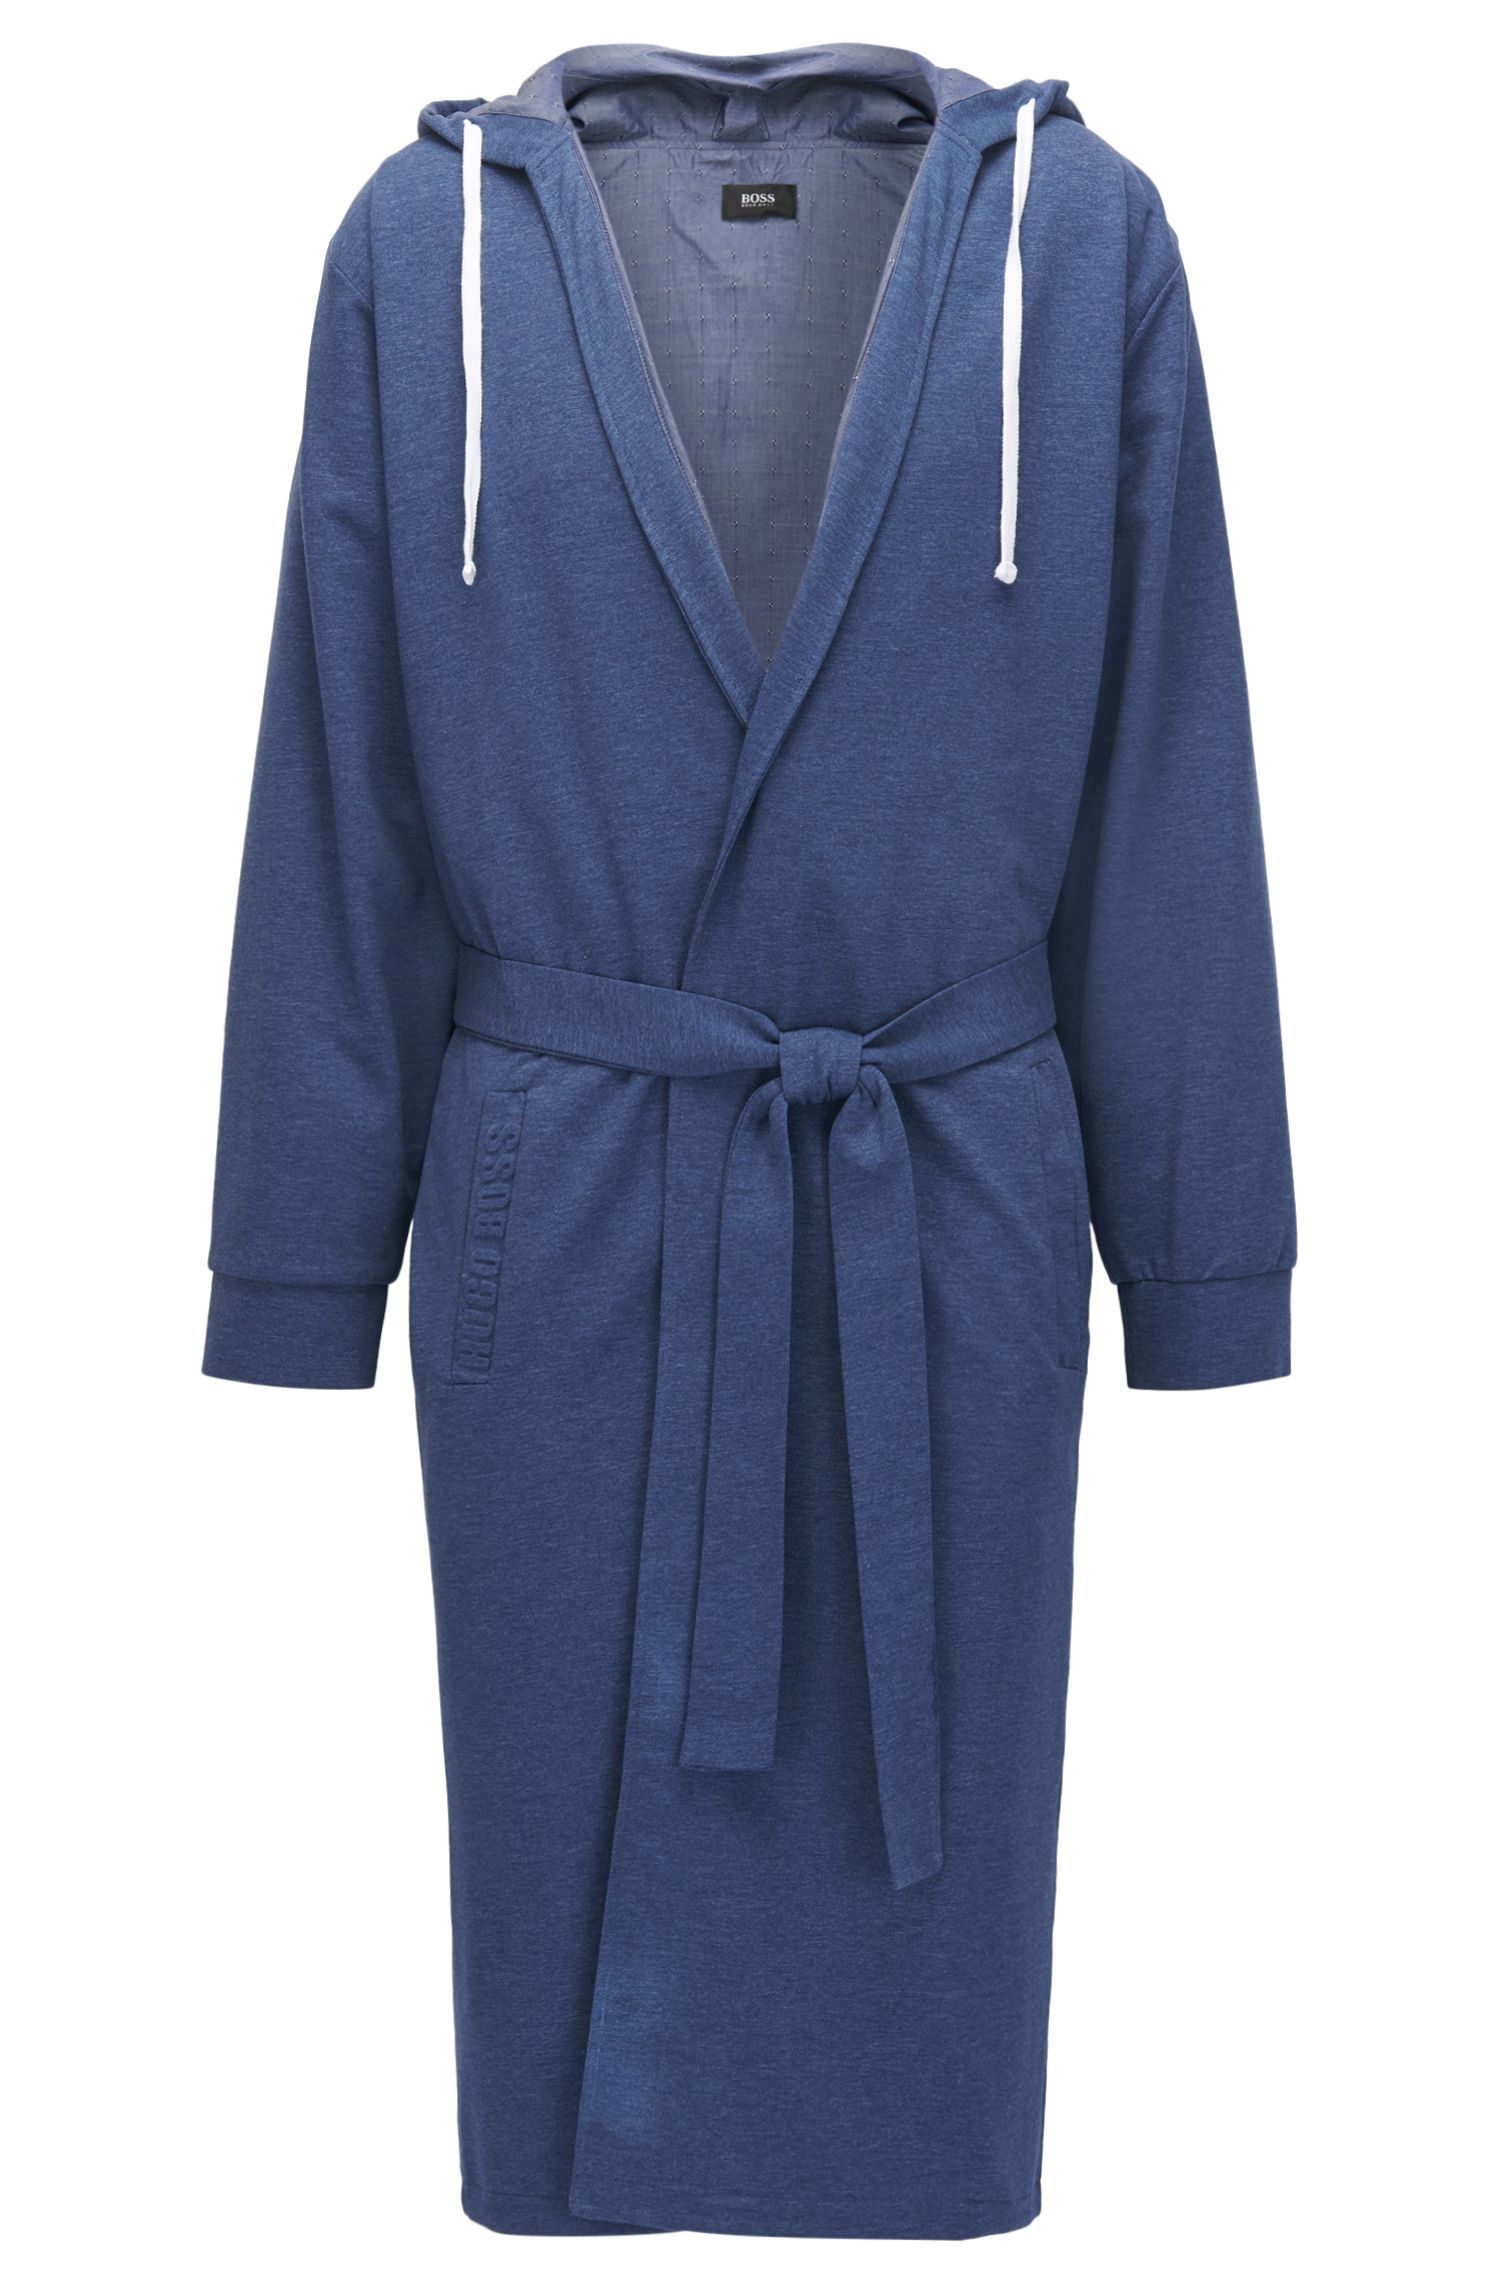 Hooded dressing gown in mélange French terry